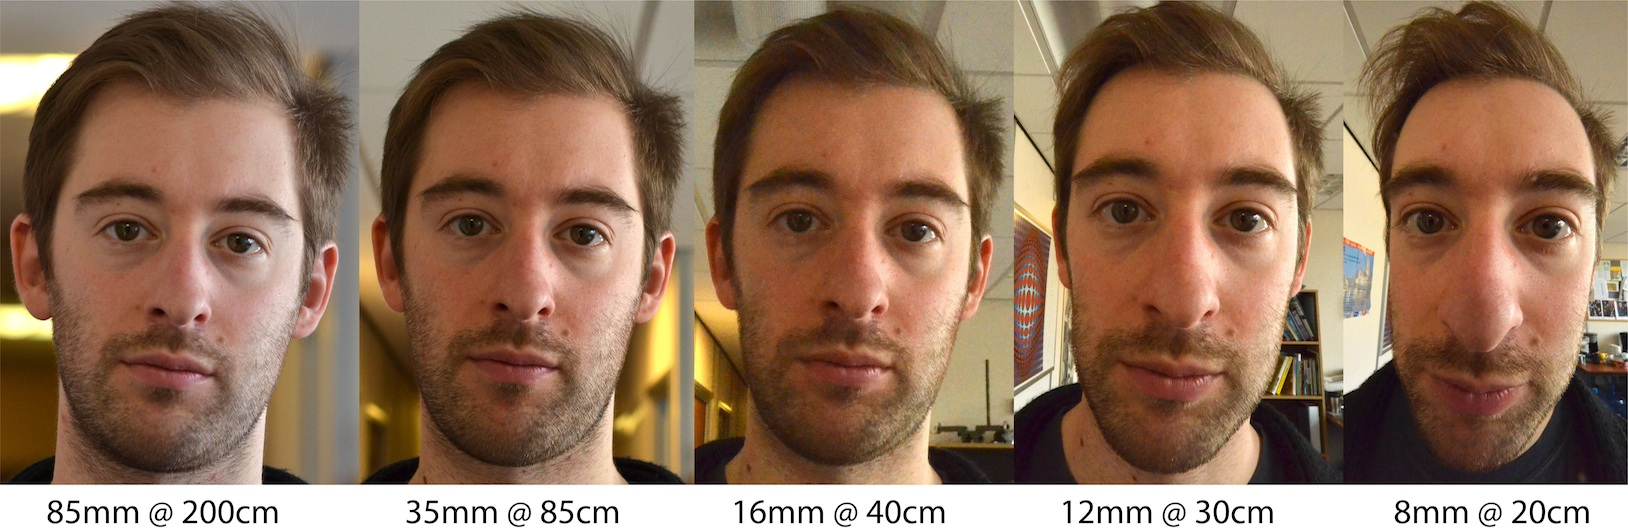 Camera distortion makes you look different in pictures than in real life